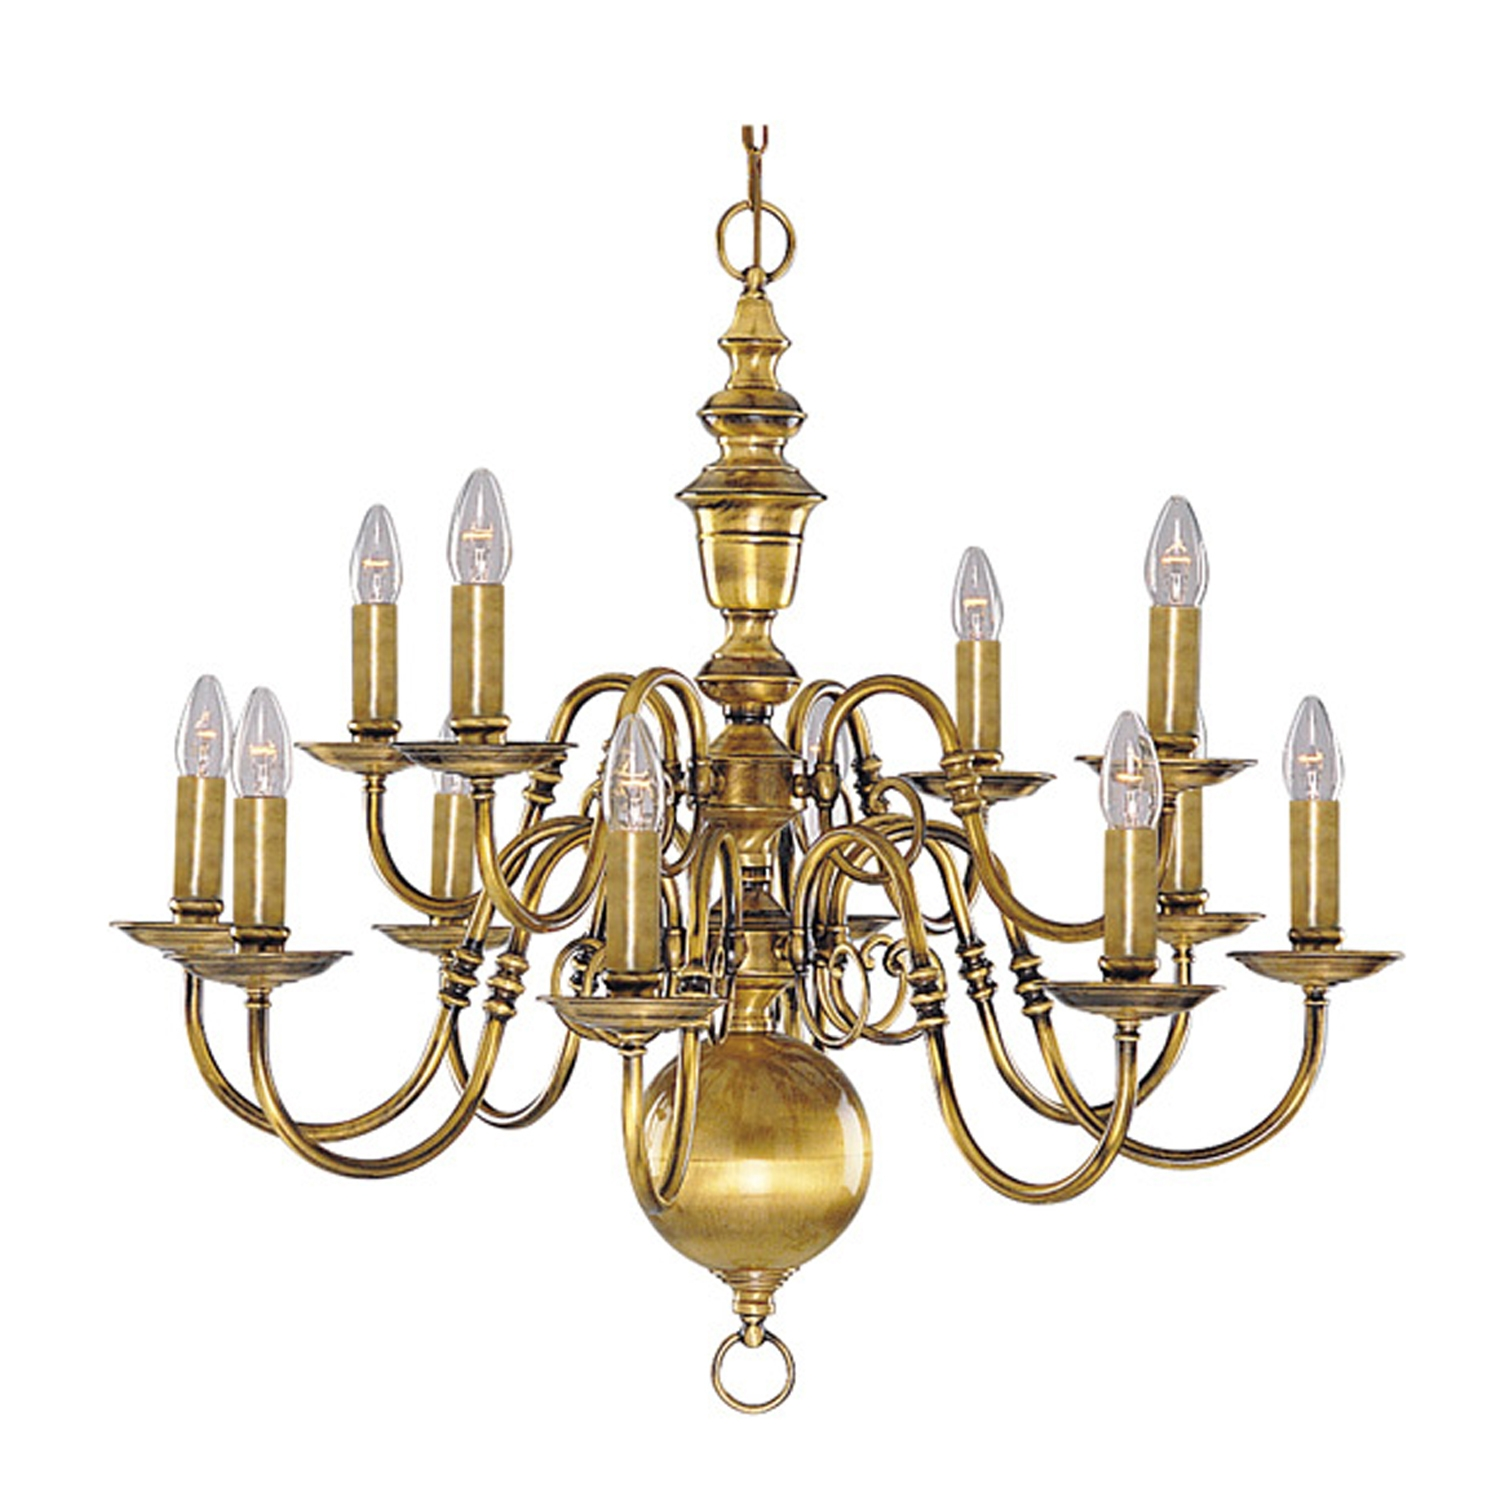 Brass Chandelier Home Designs Regarding Old Brass Chandeliers (Image 9 of 25)